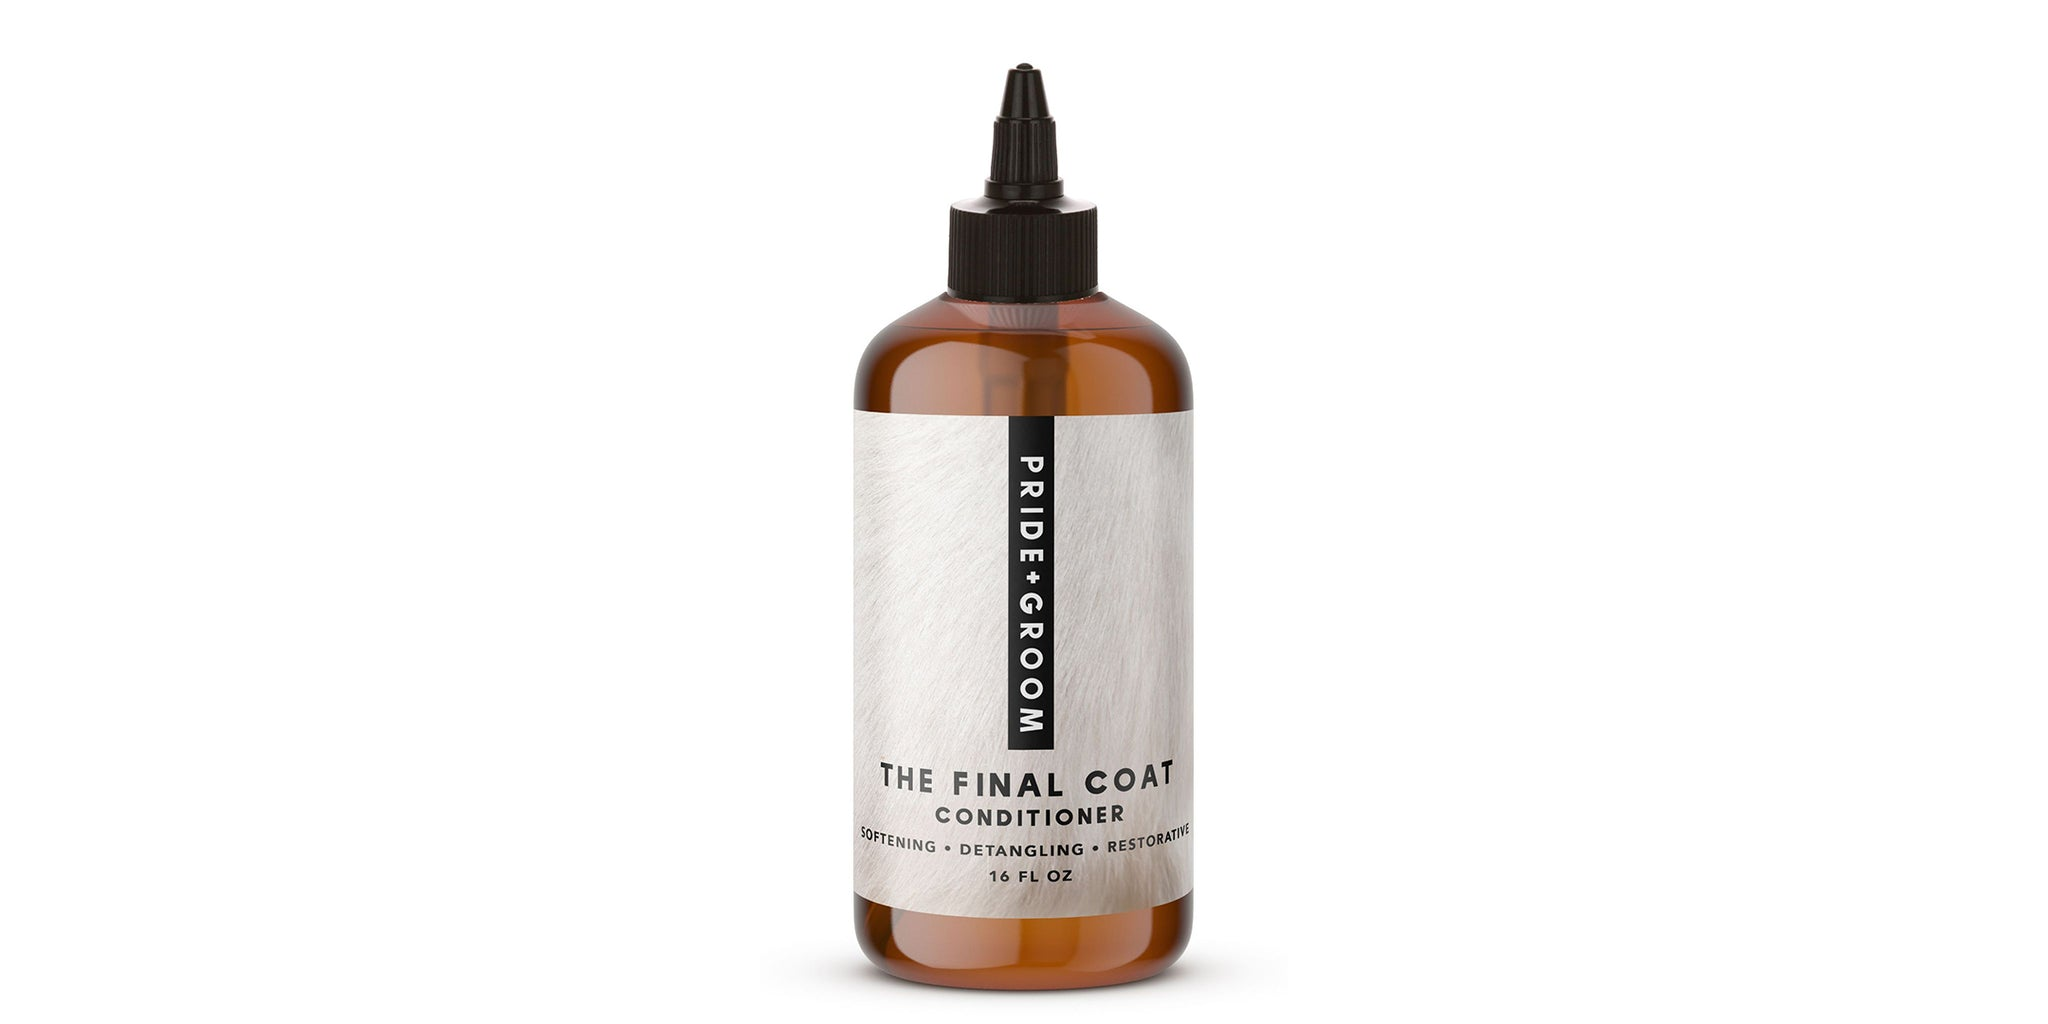 The Final Coat Conditioner